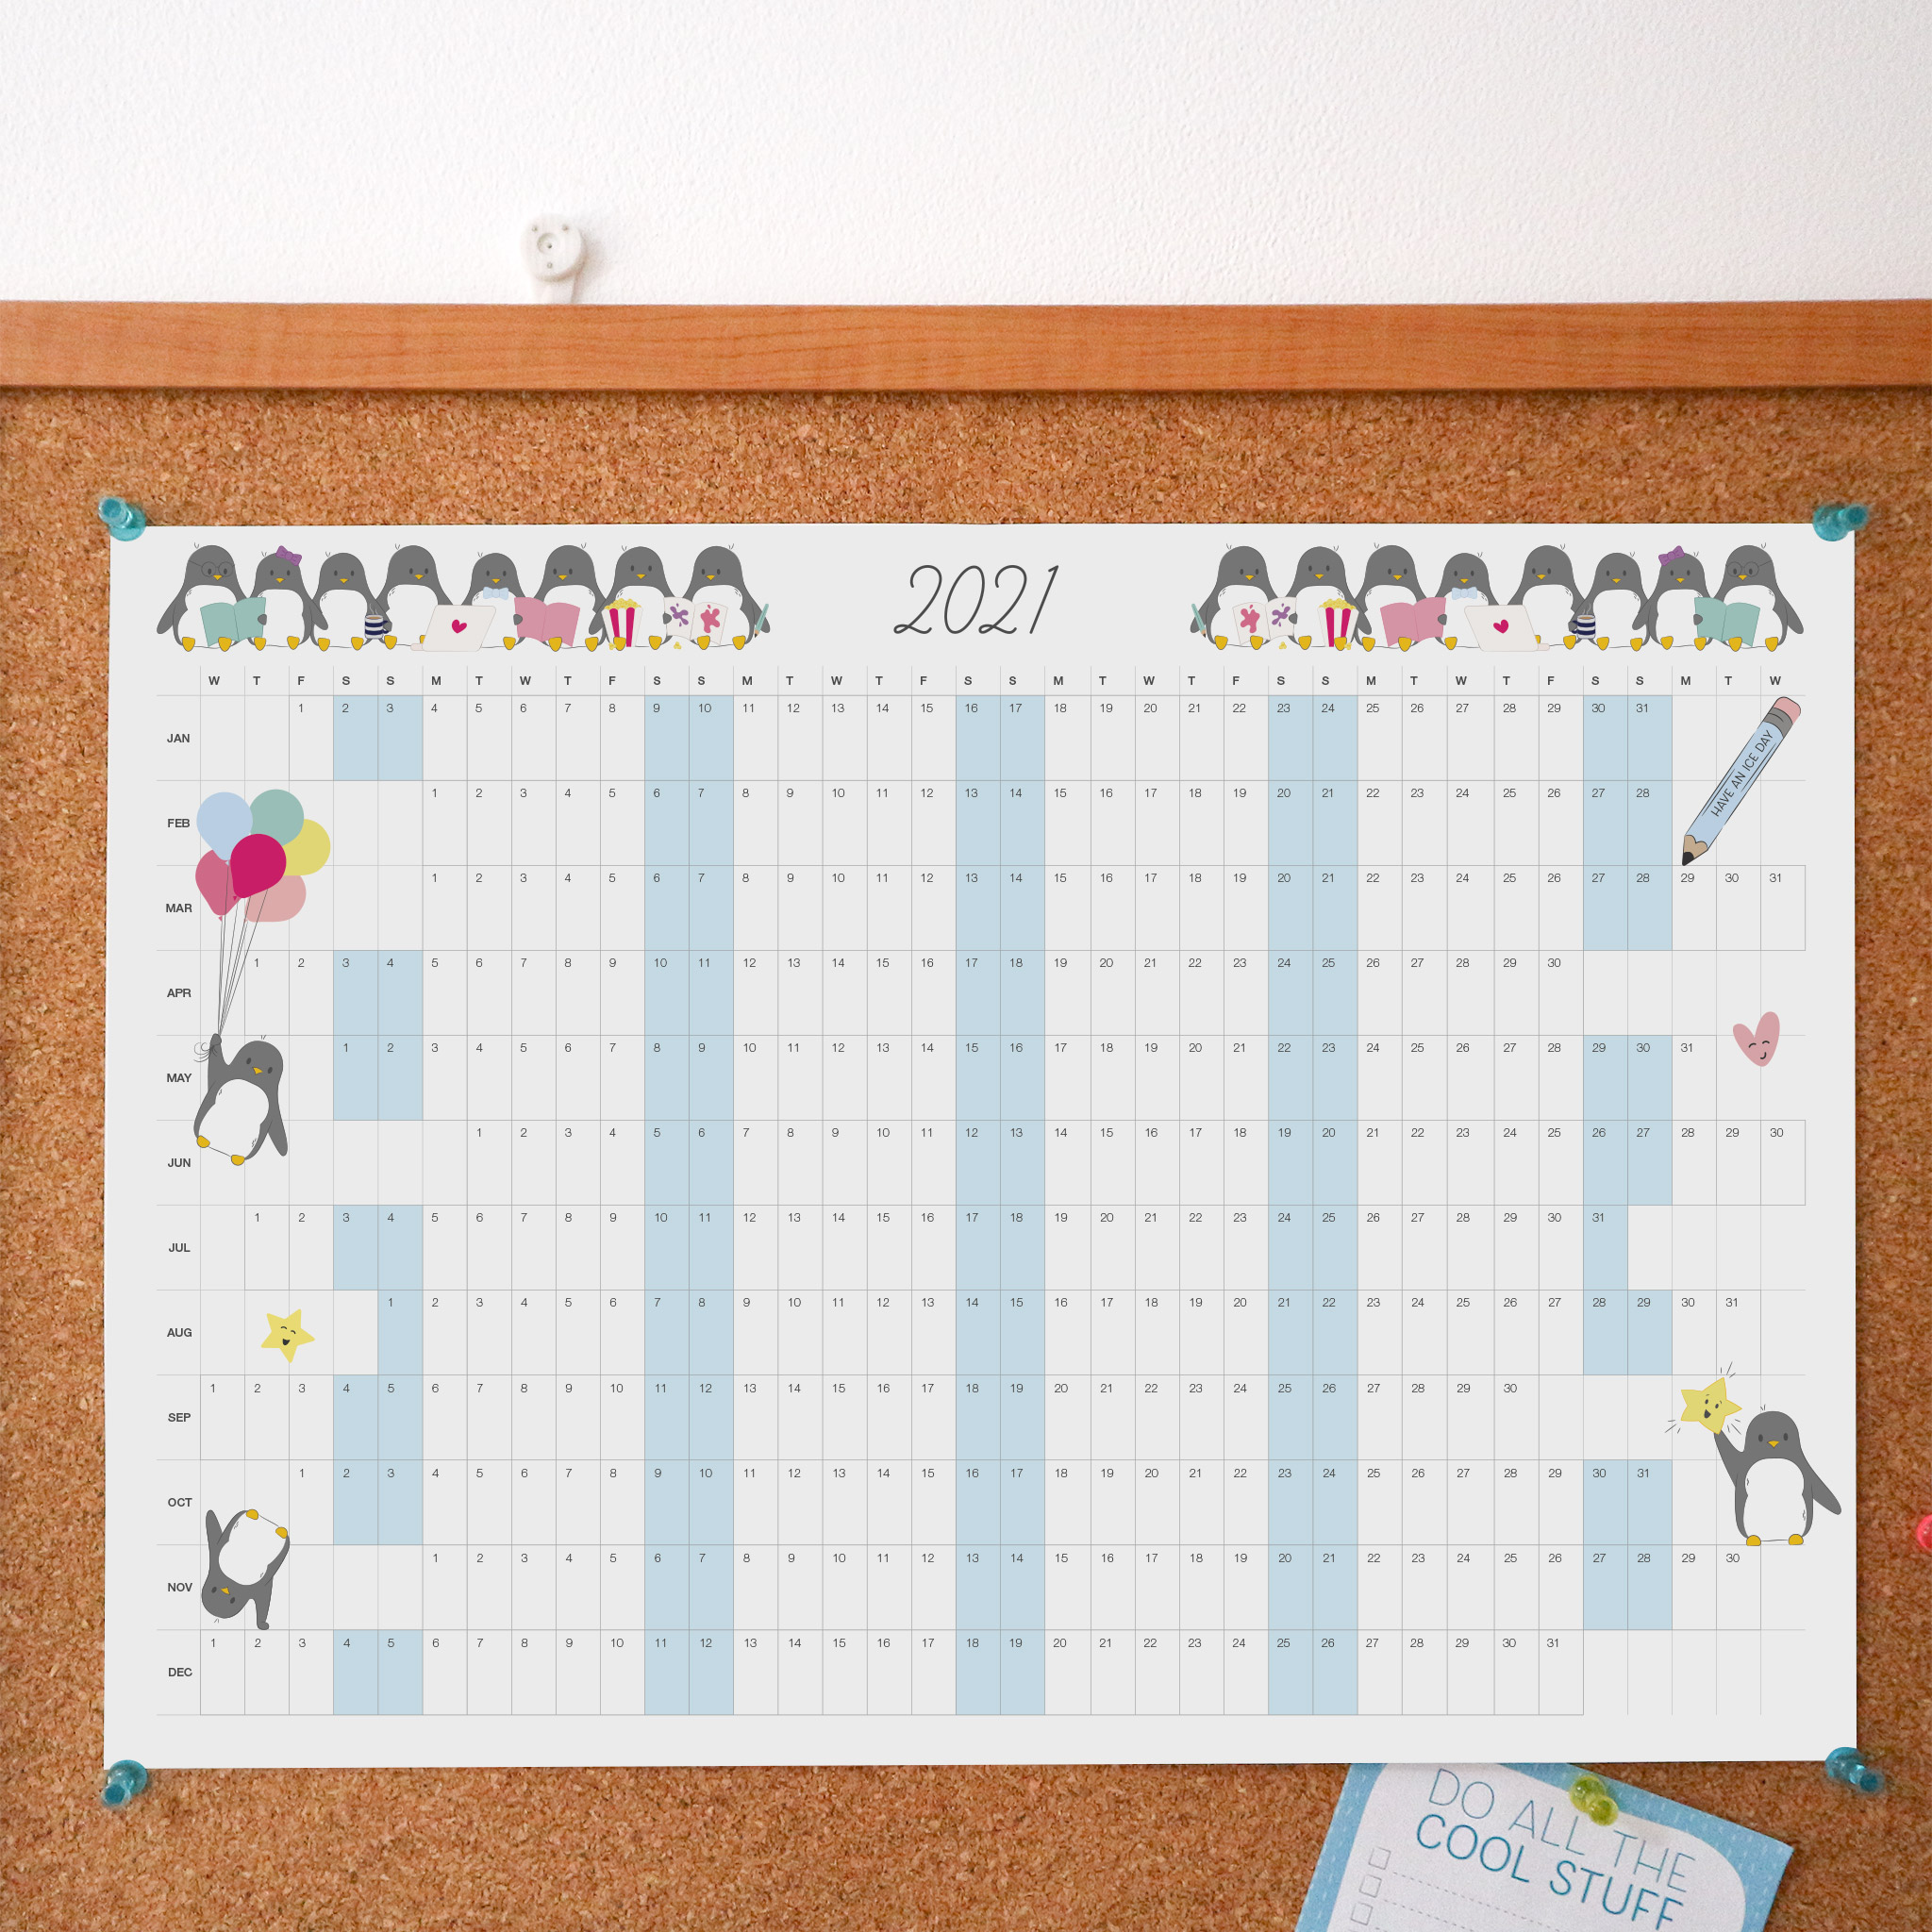 The 2021 year to view penguin wall calendar styled against a pin board background.